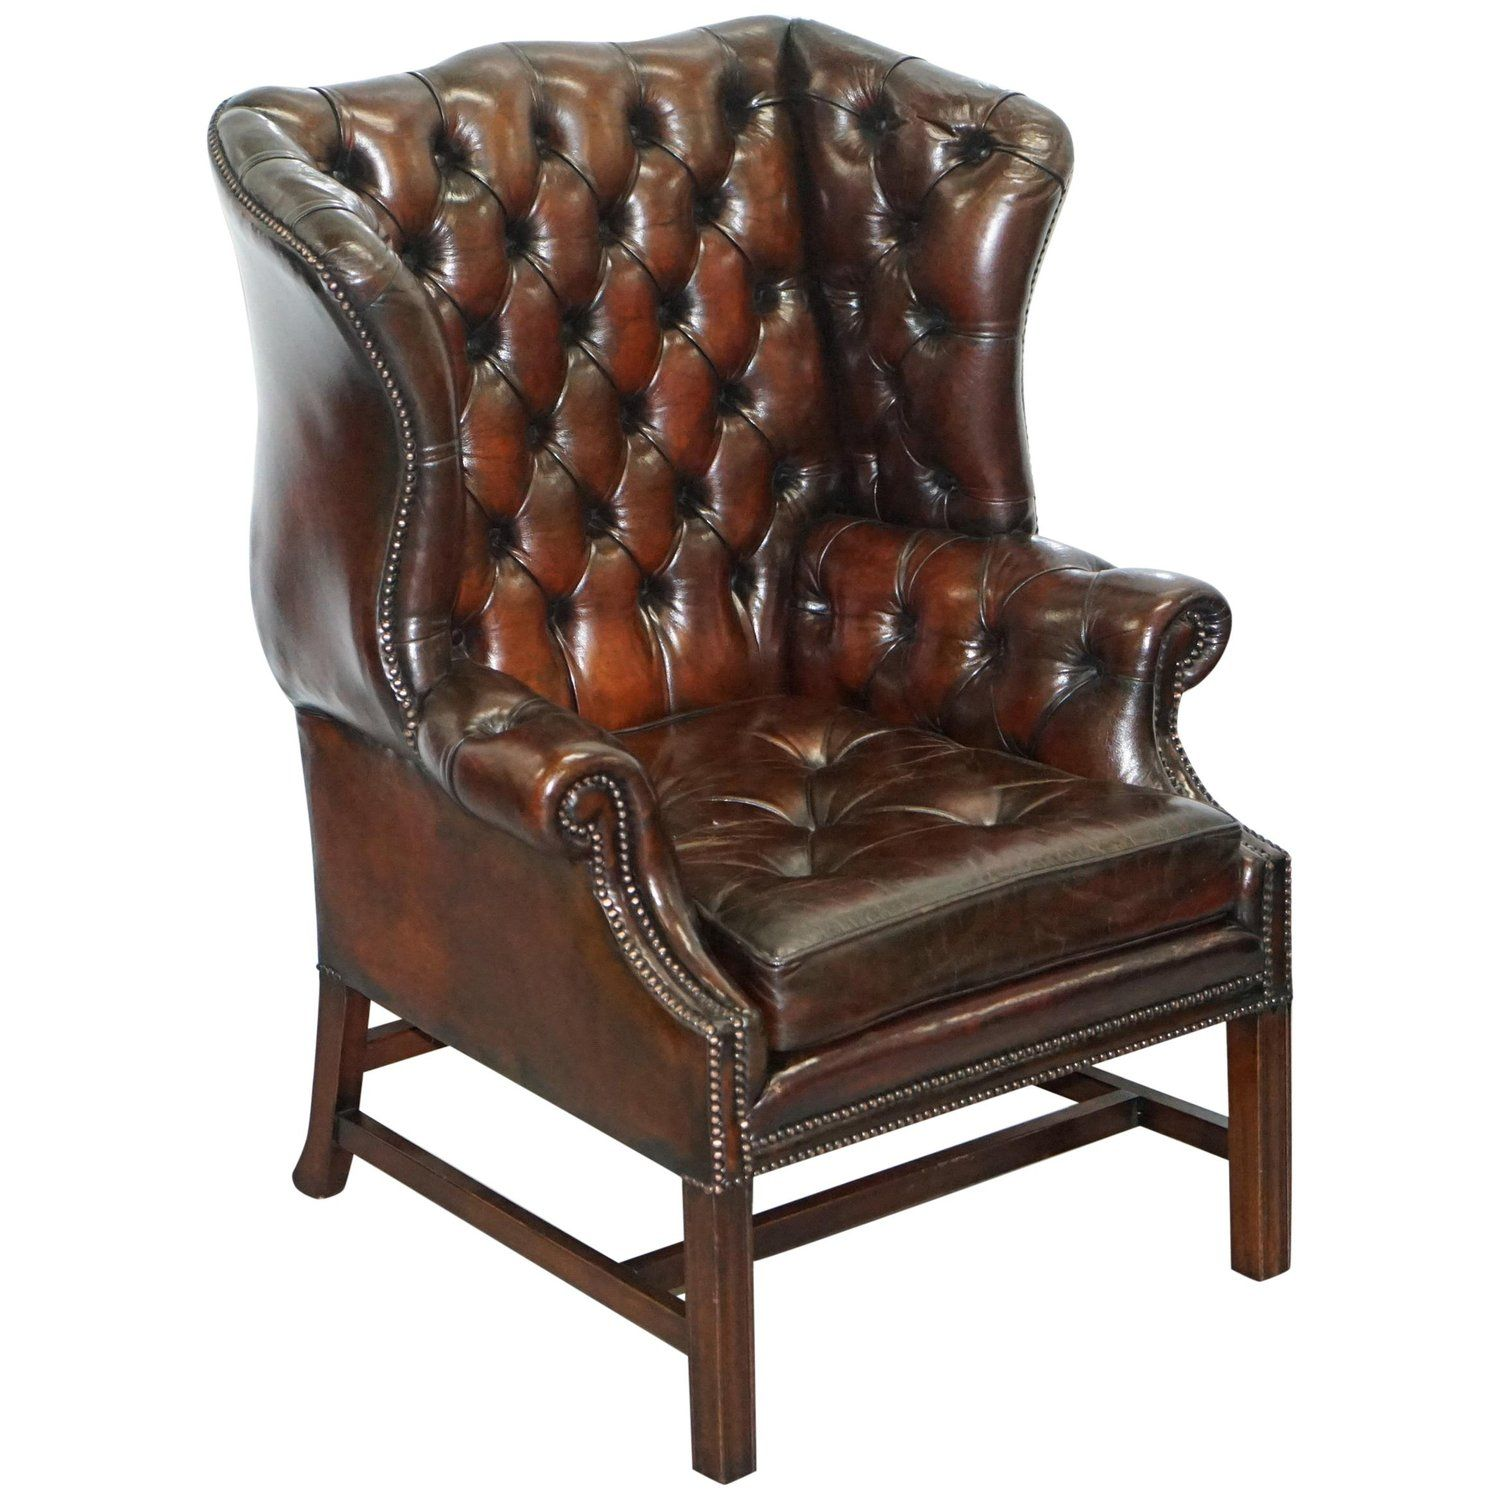 Stunning Cigar Brown Leather Chesterfield Wingback Armchair